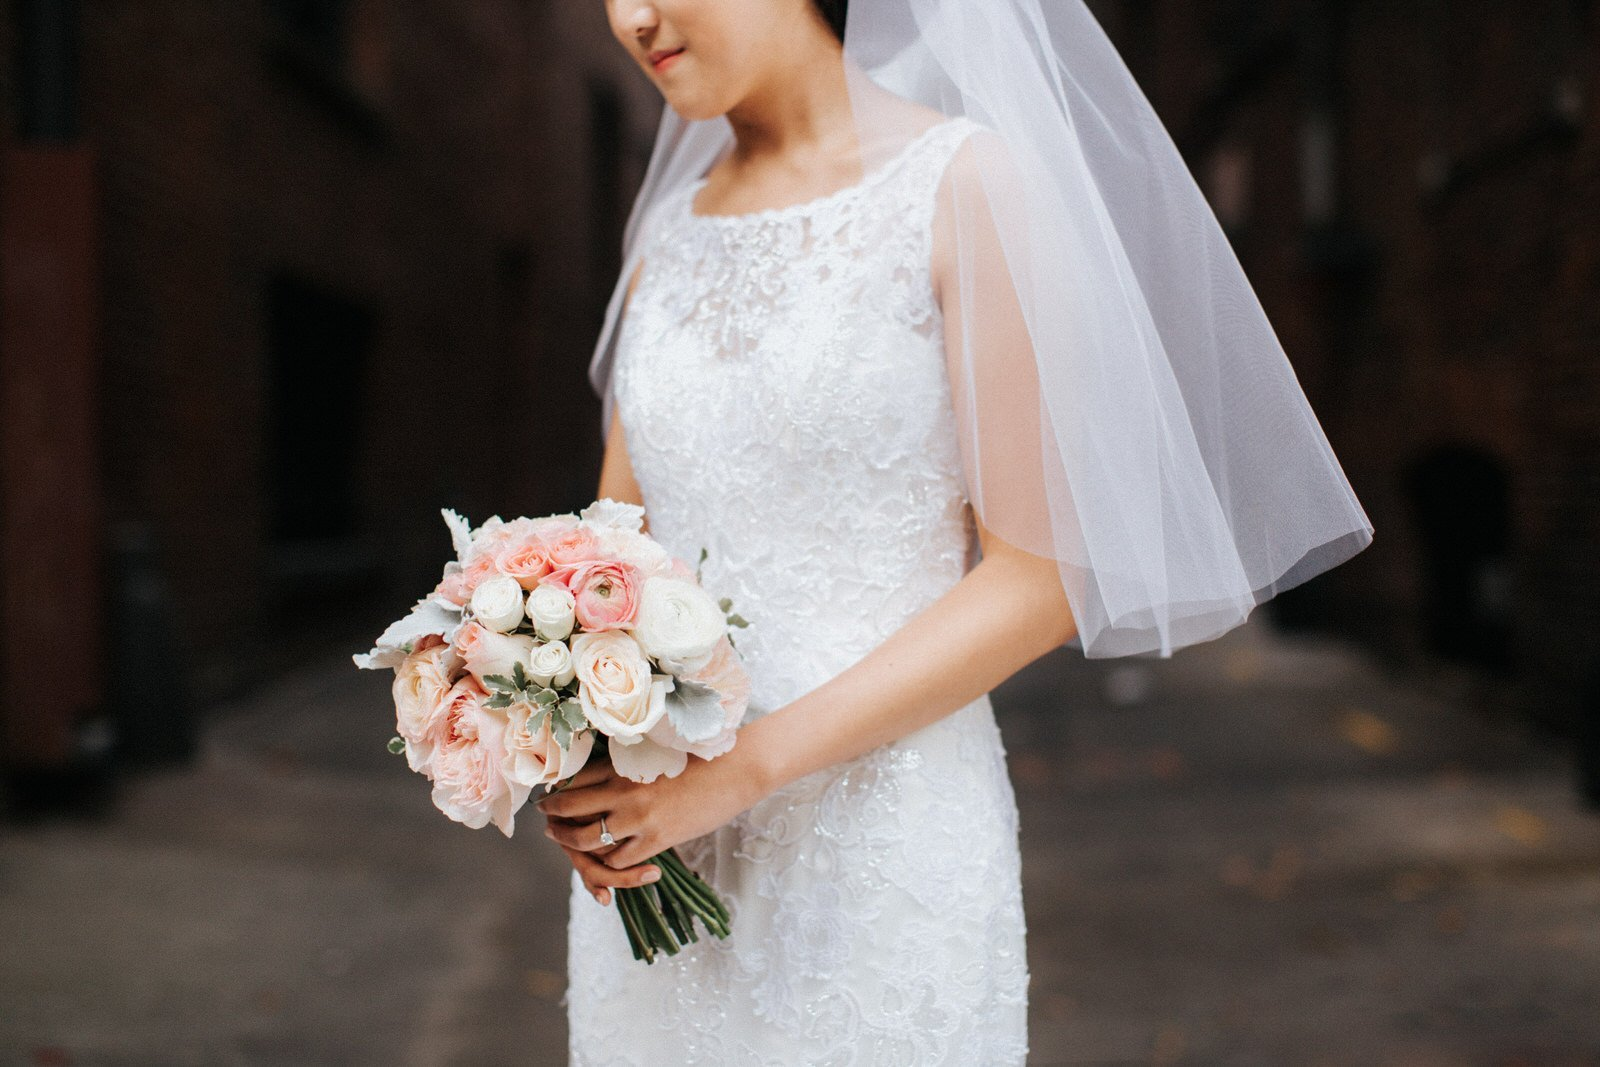 The bride holds her bouquet during portraits